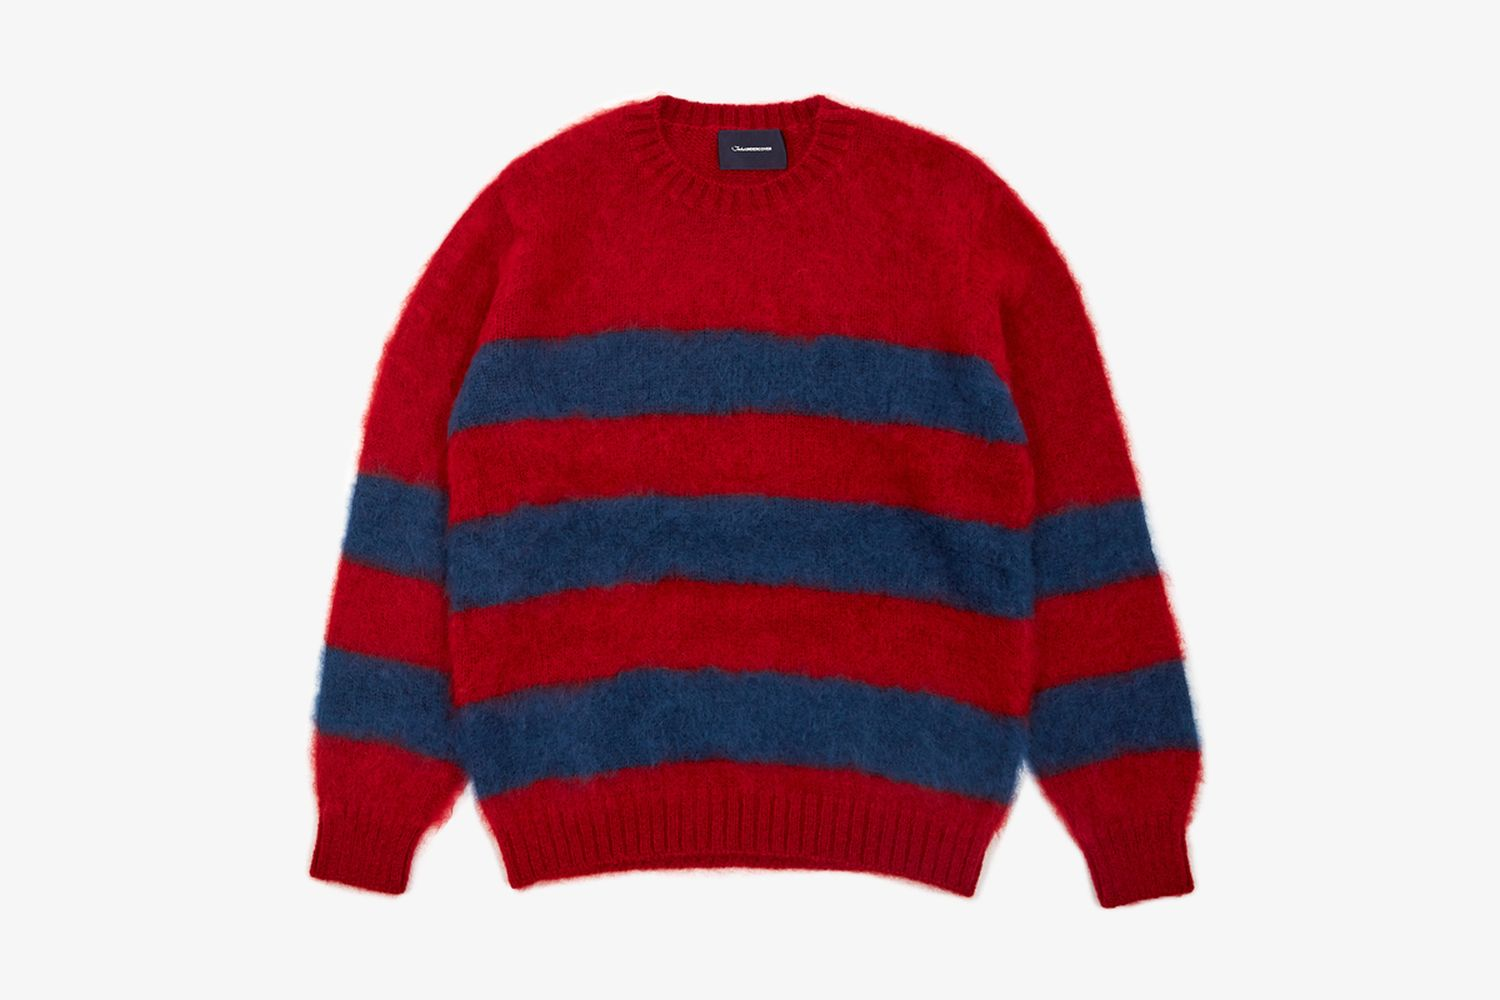 JohnUNDERCOVER Striped Knit Jumper